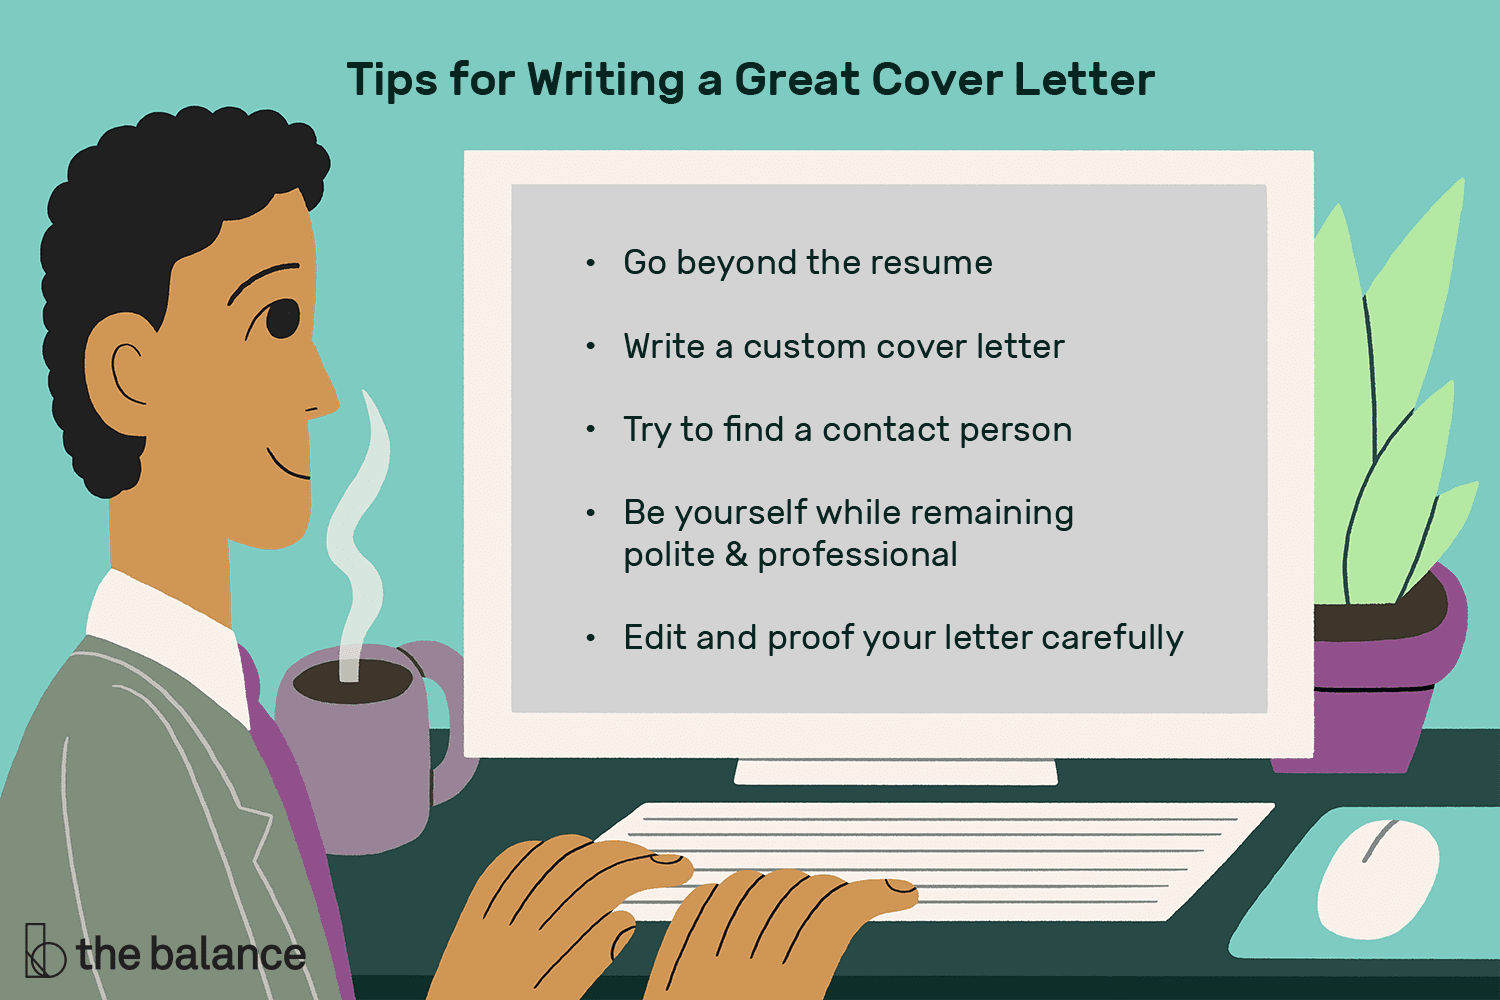 Tips For A Great Cover Letter from www.thebalancecareers.com